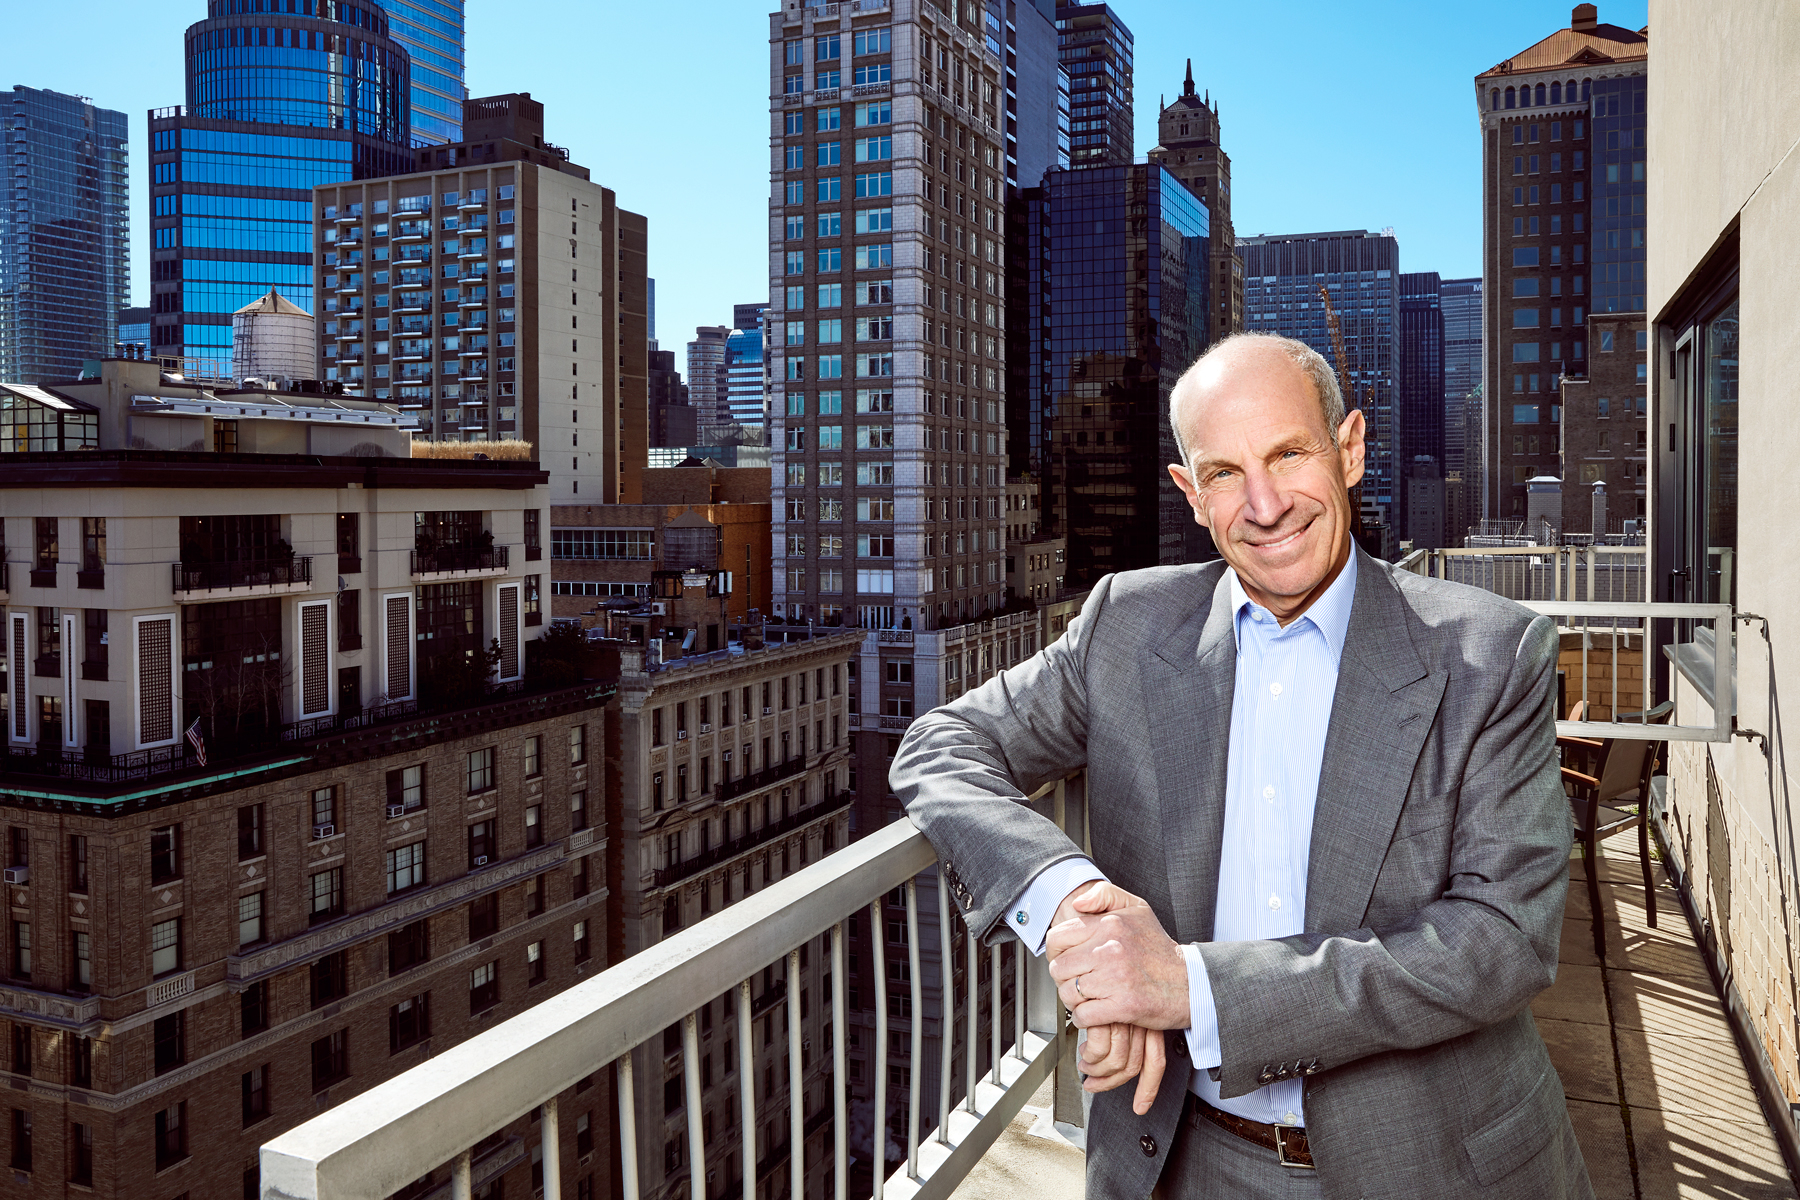 Jonathan Tisch resumed CEO duties of Loews Hotels in October 2016.